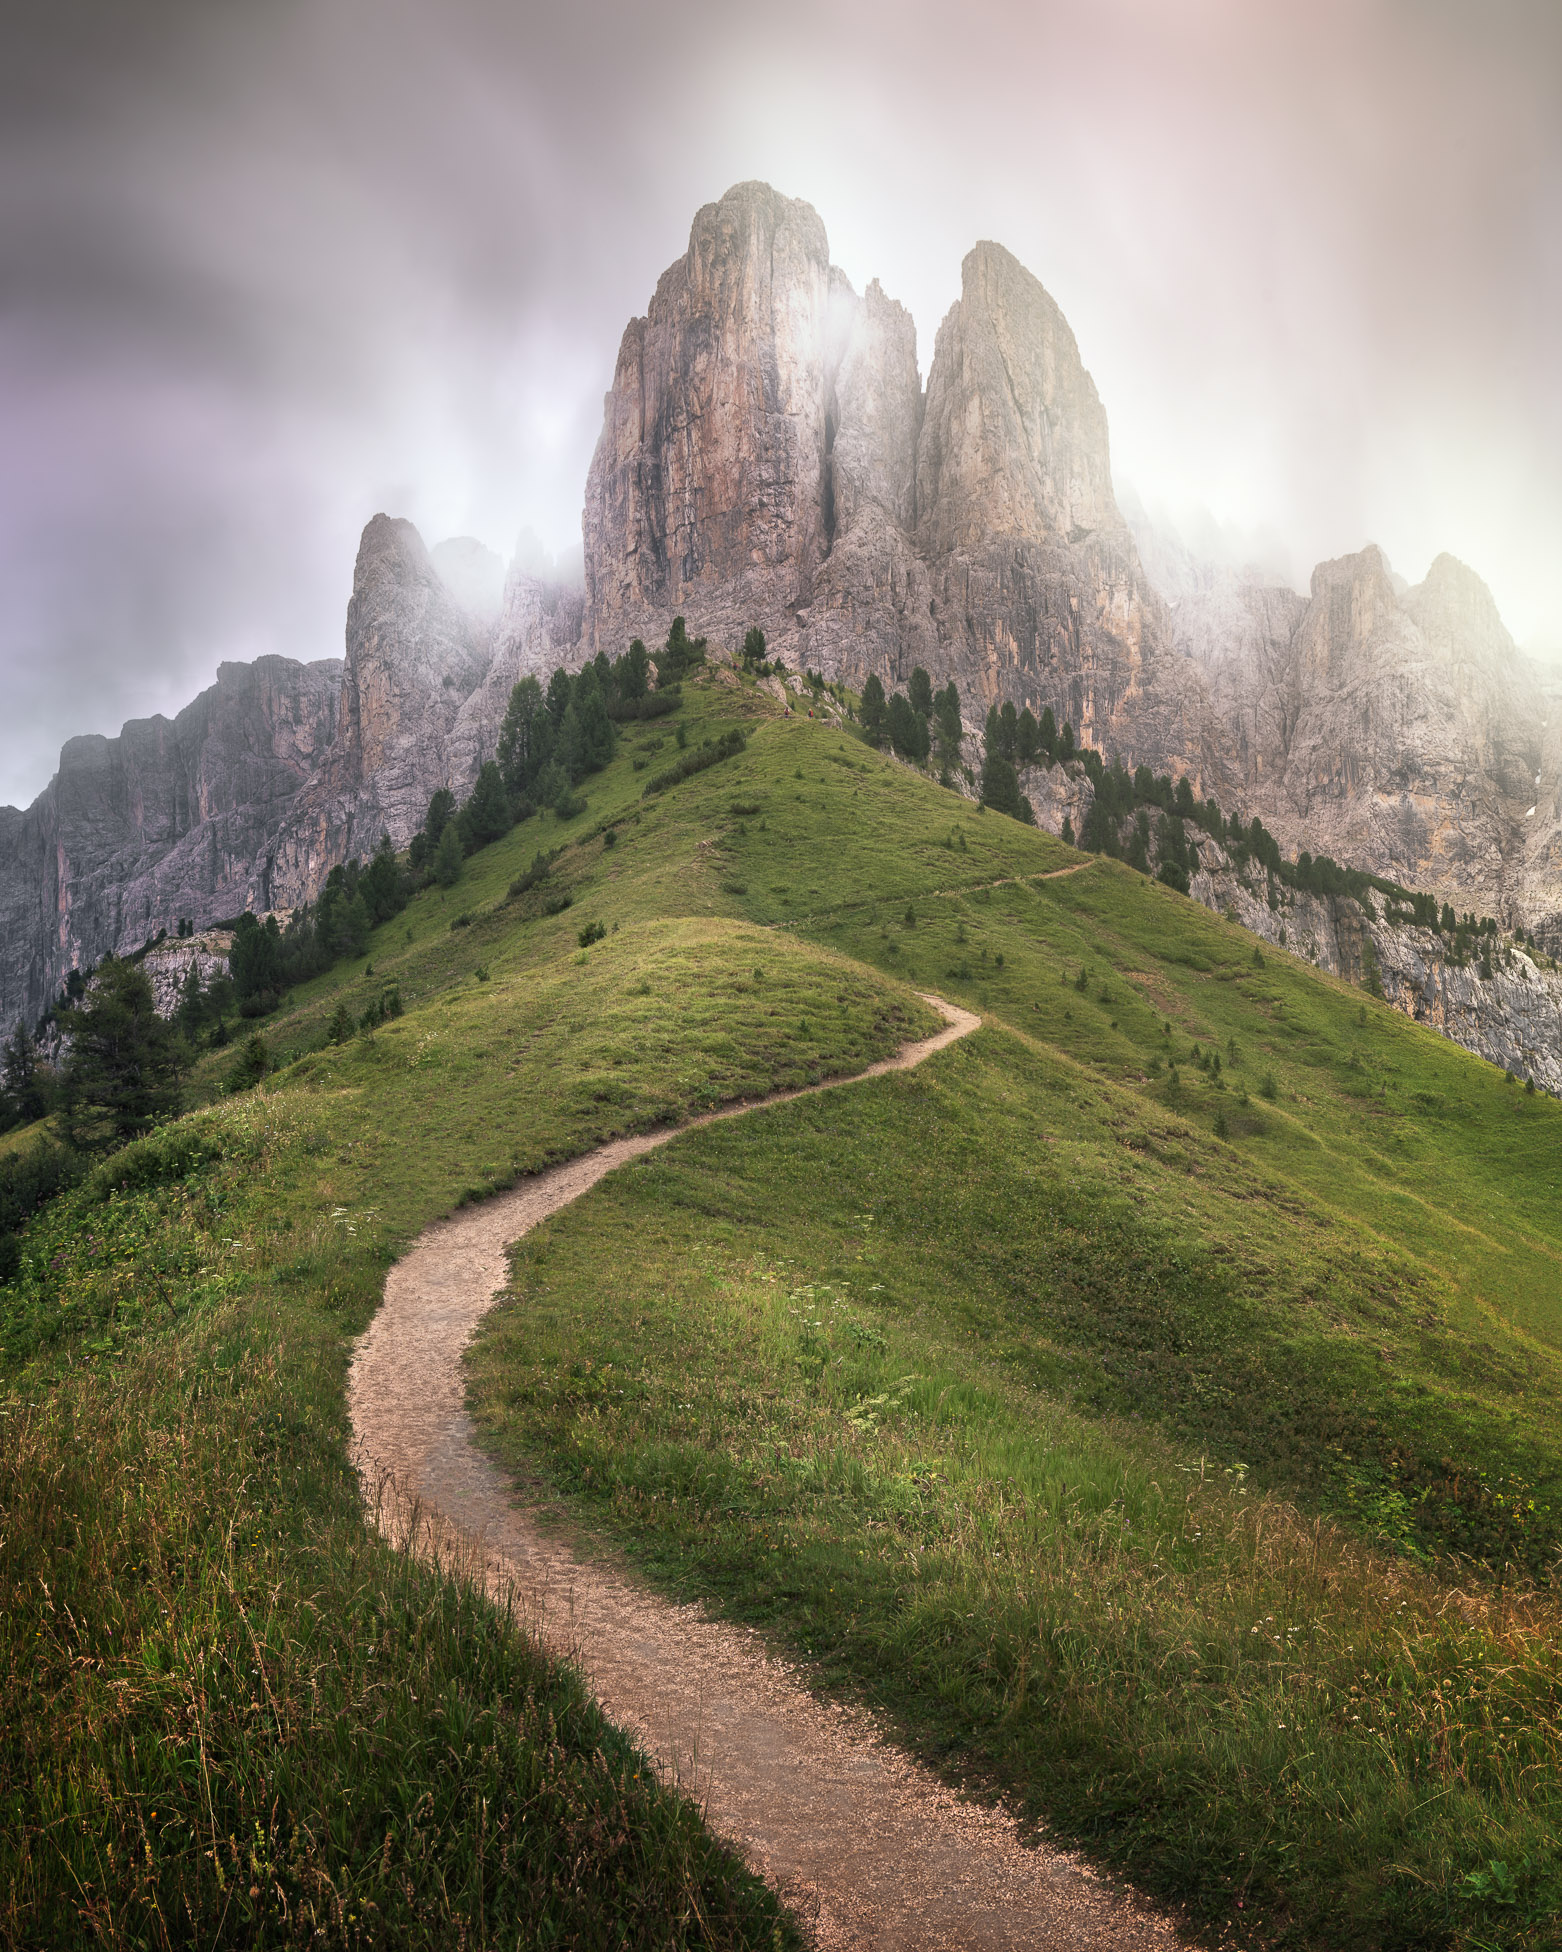 Winding path led up to Brunecker Turm mountain peak in Passo Gardena, Trentino Alto Adige, Italy